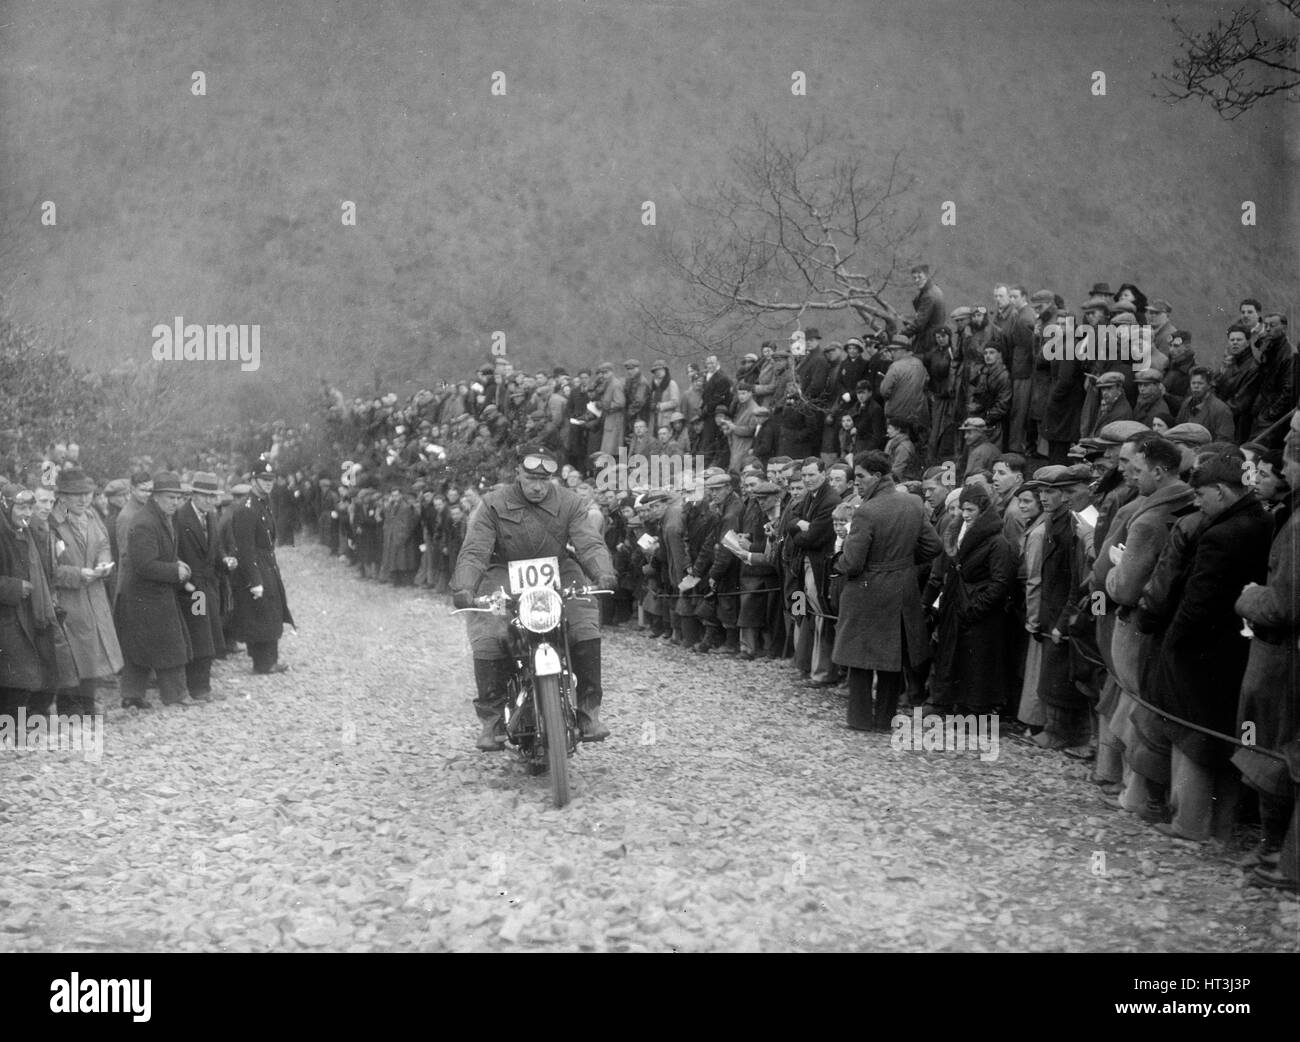 347 cc AJS of RW Cassam competing in the MCC Lands End Trial, Beggars Roost, Devon, 1936. Artist: Bill Brunell. Stock Photo